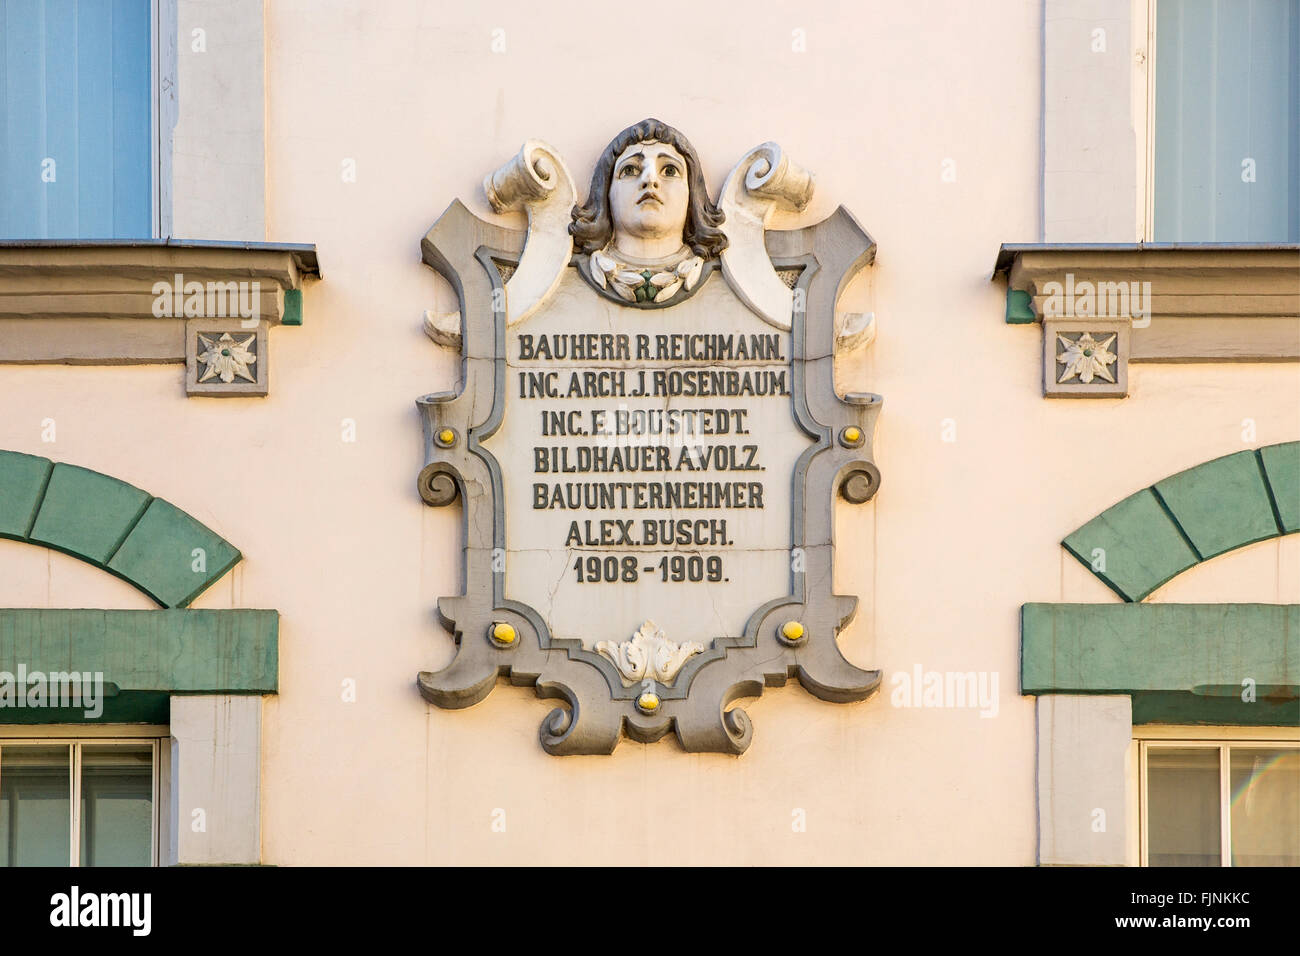 geography / travel, Estonia, Tallinn, Facade detail of the Baltic German period, Additional-Rights-Clearance-Info - Stock Image